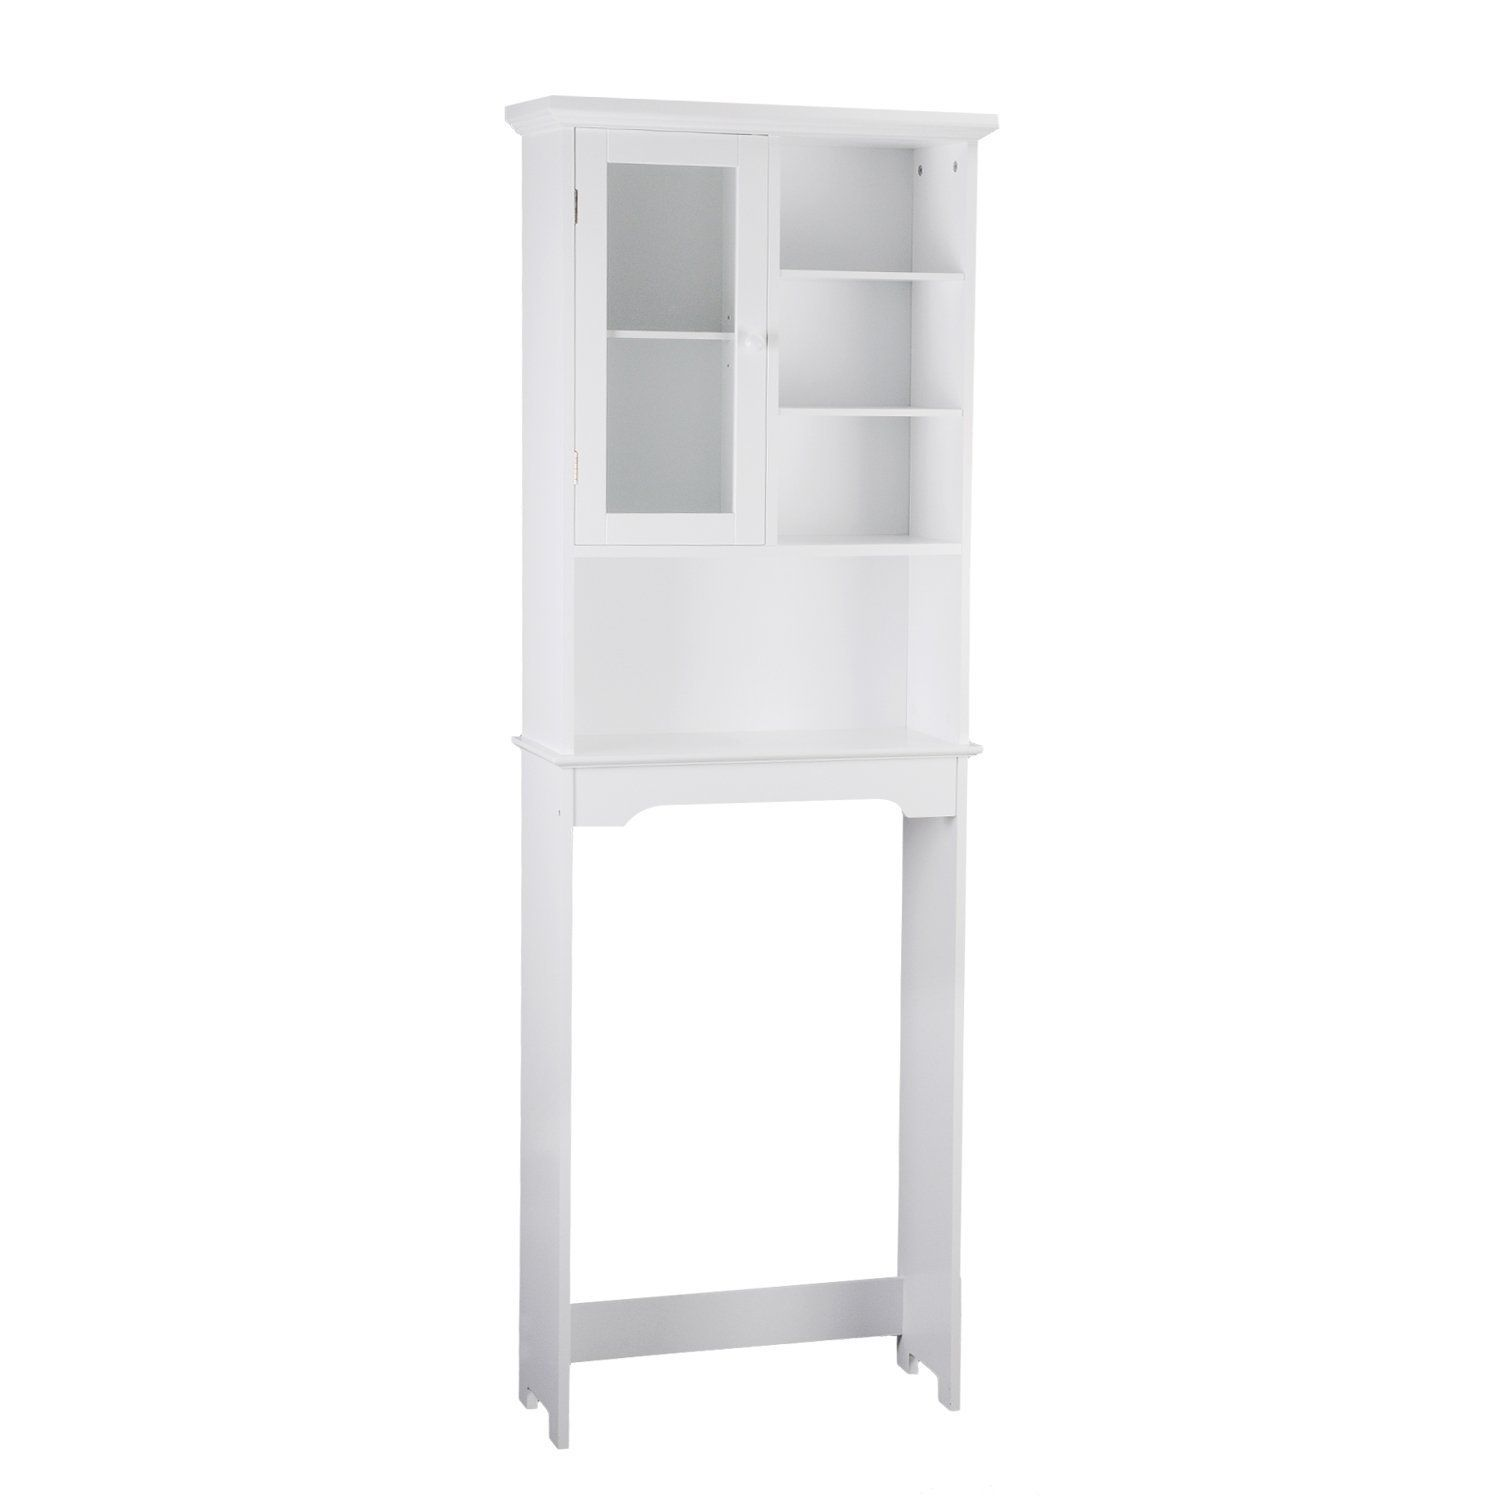 asense high white bathroom over toilet storage shelves cabinet simple living this pretty and fashion bathroom space saving cabinet fit over the toilet bowl